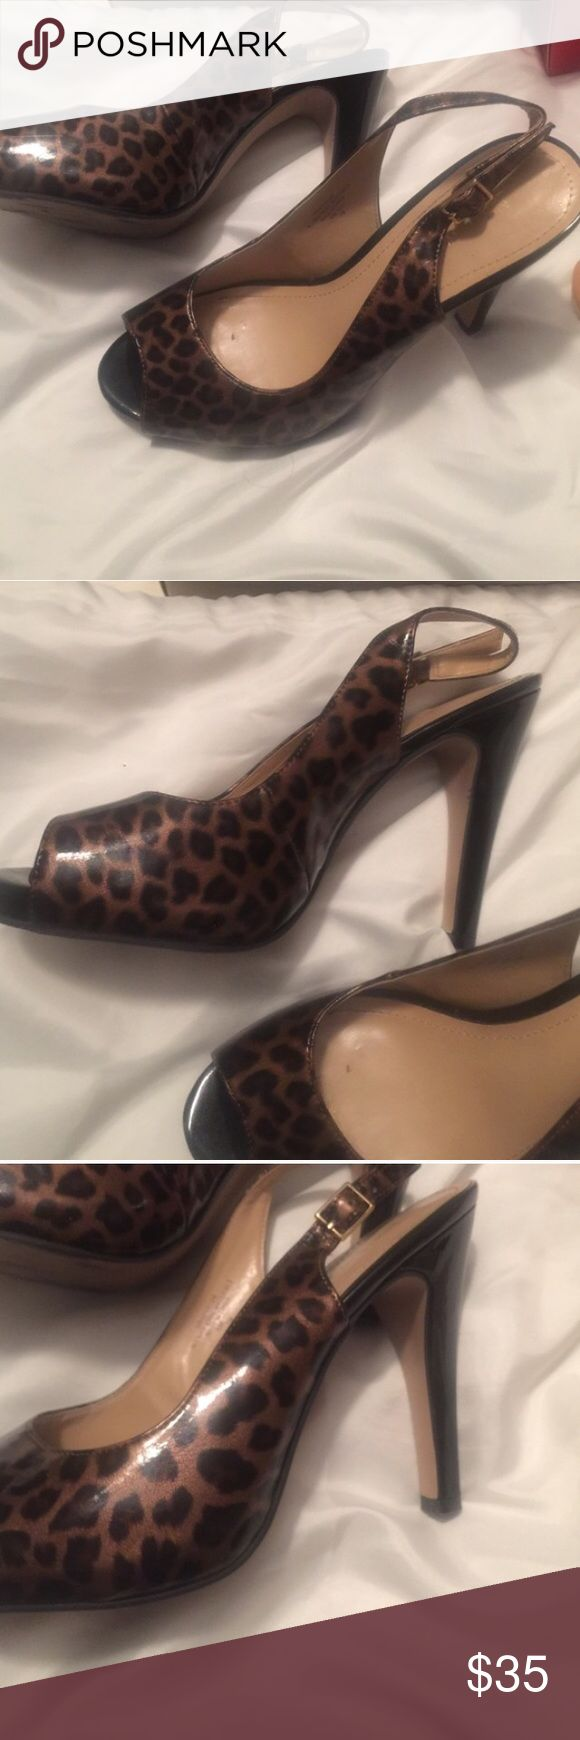 Nine West Cheetah Print Heels Only worn a couple times in good condition size 7 cheetah print brown/black color Nine West Shoes